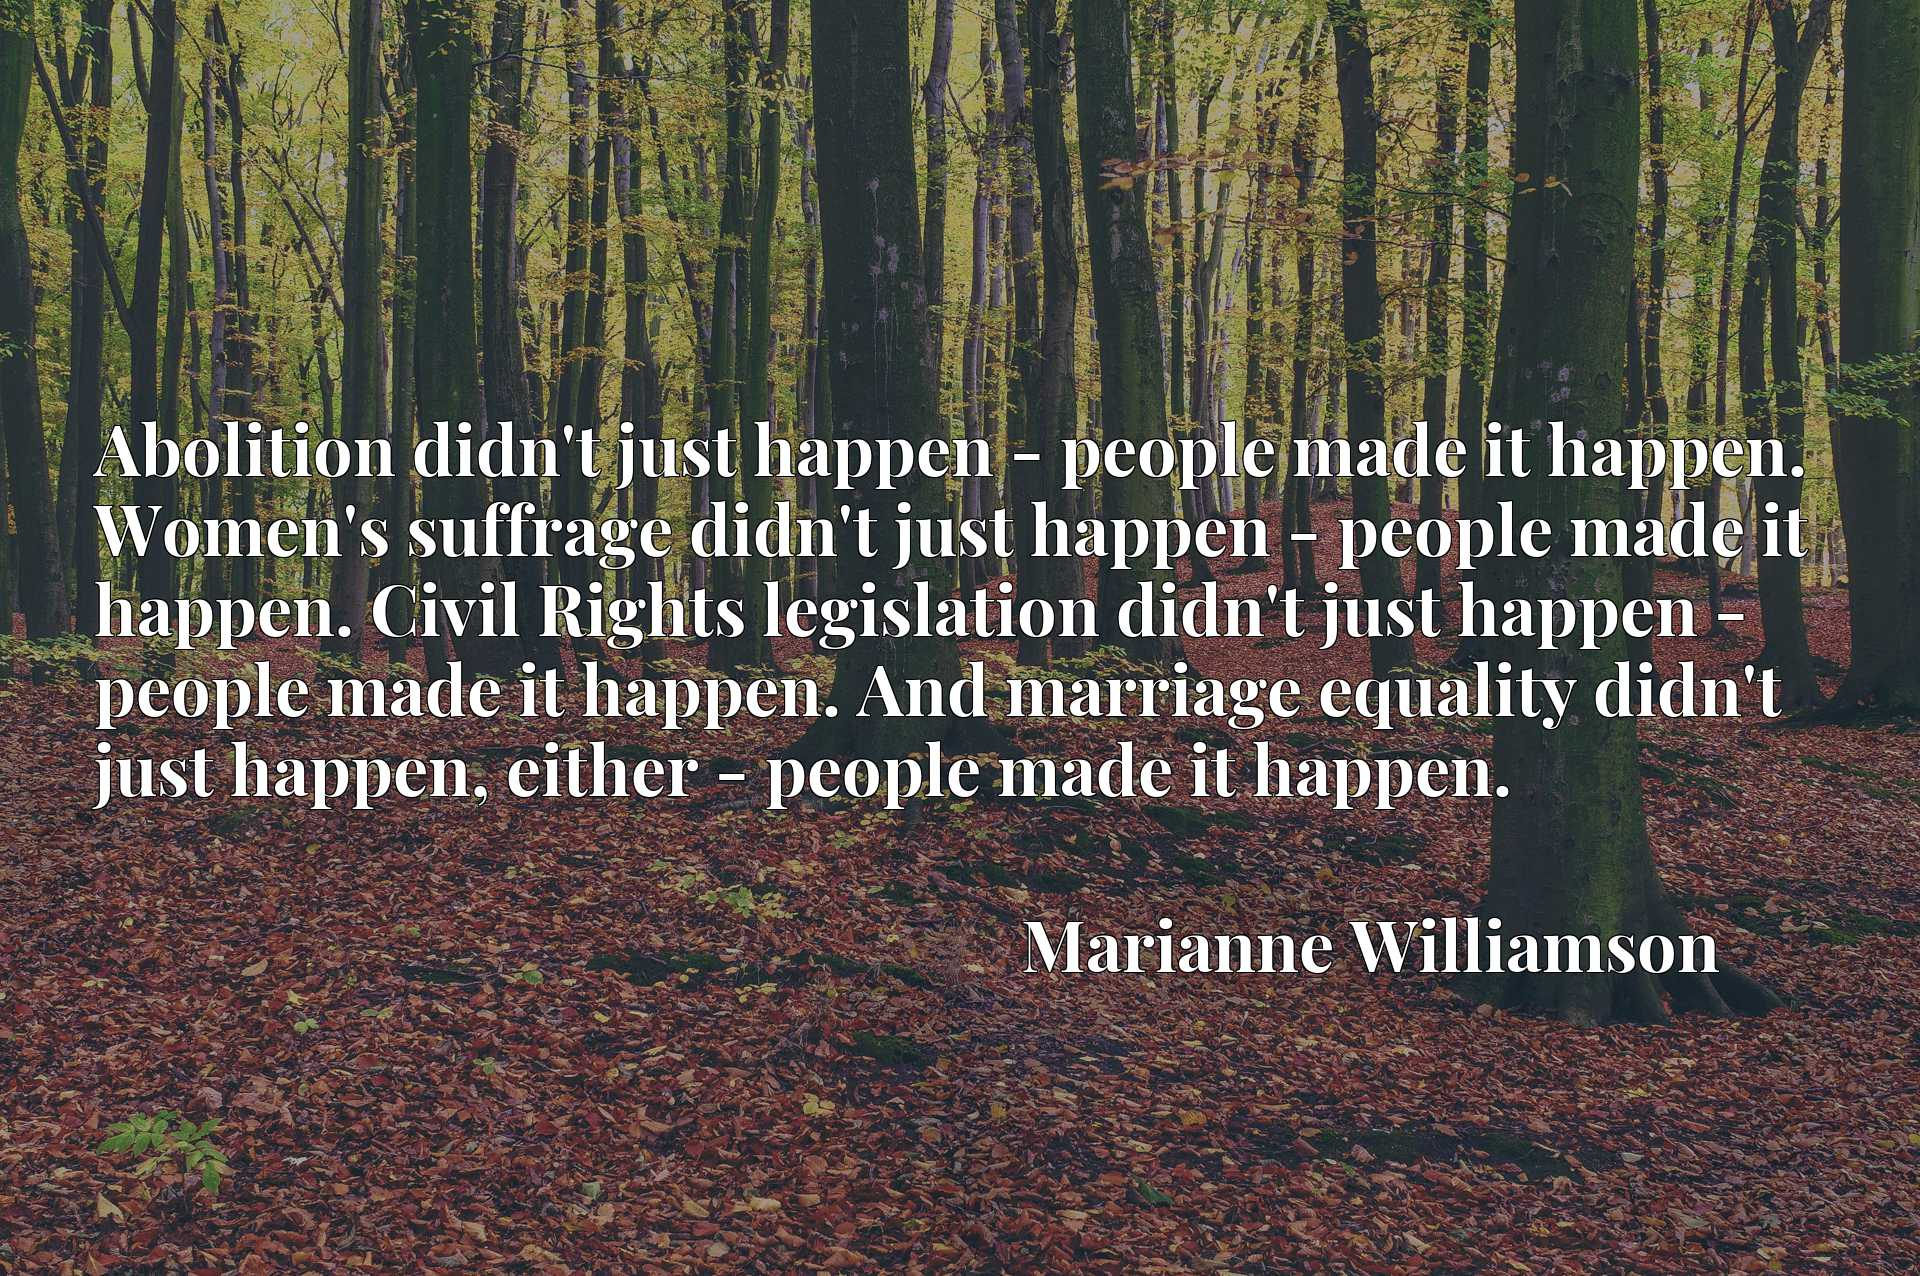 Abolition didn't just happen - people made it happen. Women's suffrage didn't just happen - people made it happen. Civil Rights legislation didn't just happen - people made it happen. And marriage equality didn't just happen, either - people made it happen.